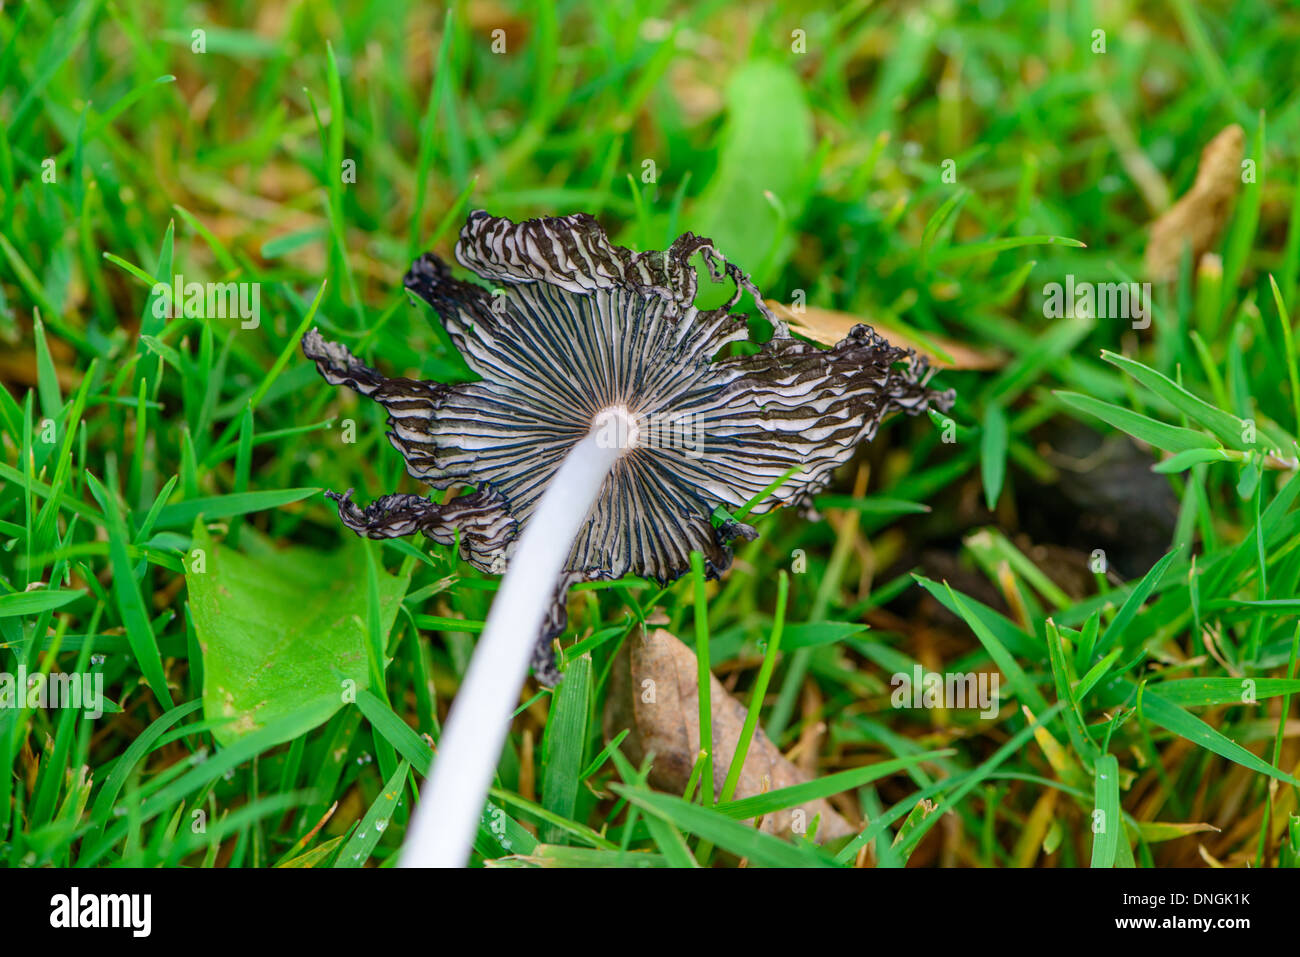 Decaying black and white ink cap mushroom on grass with autumn leaves. - Stock Image